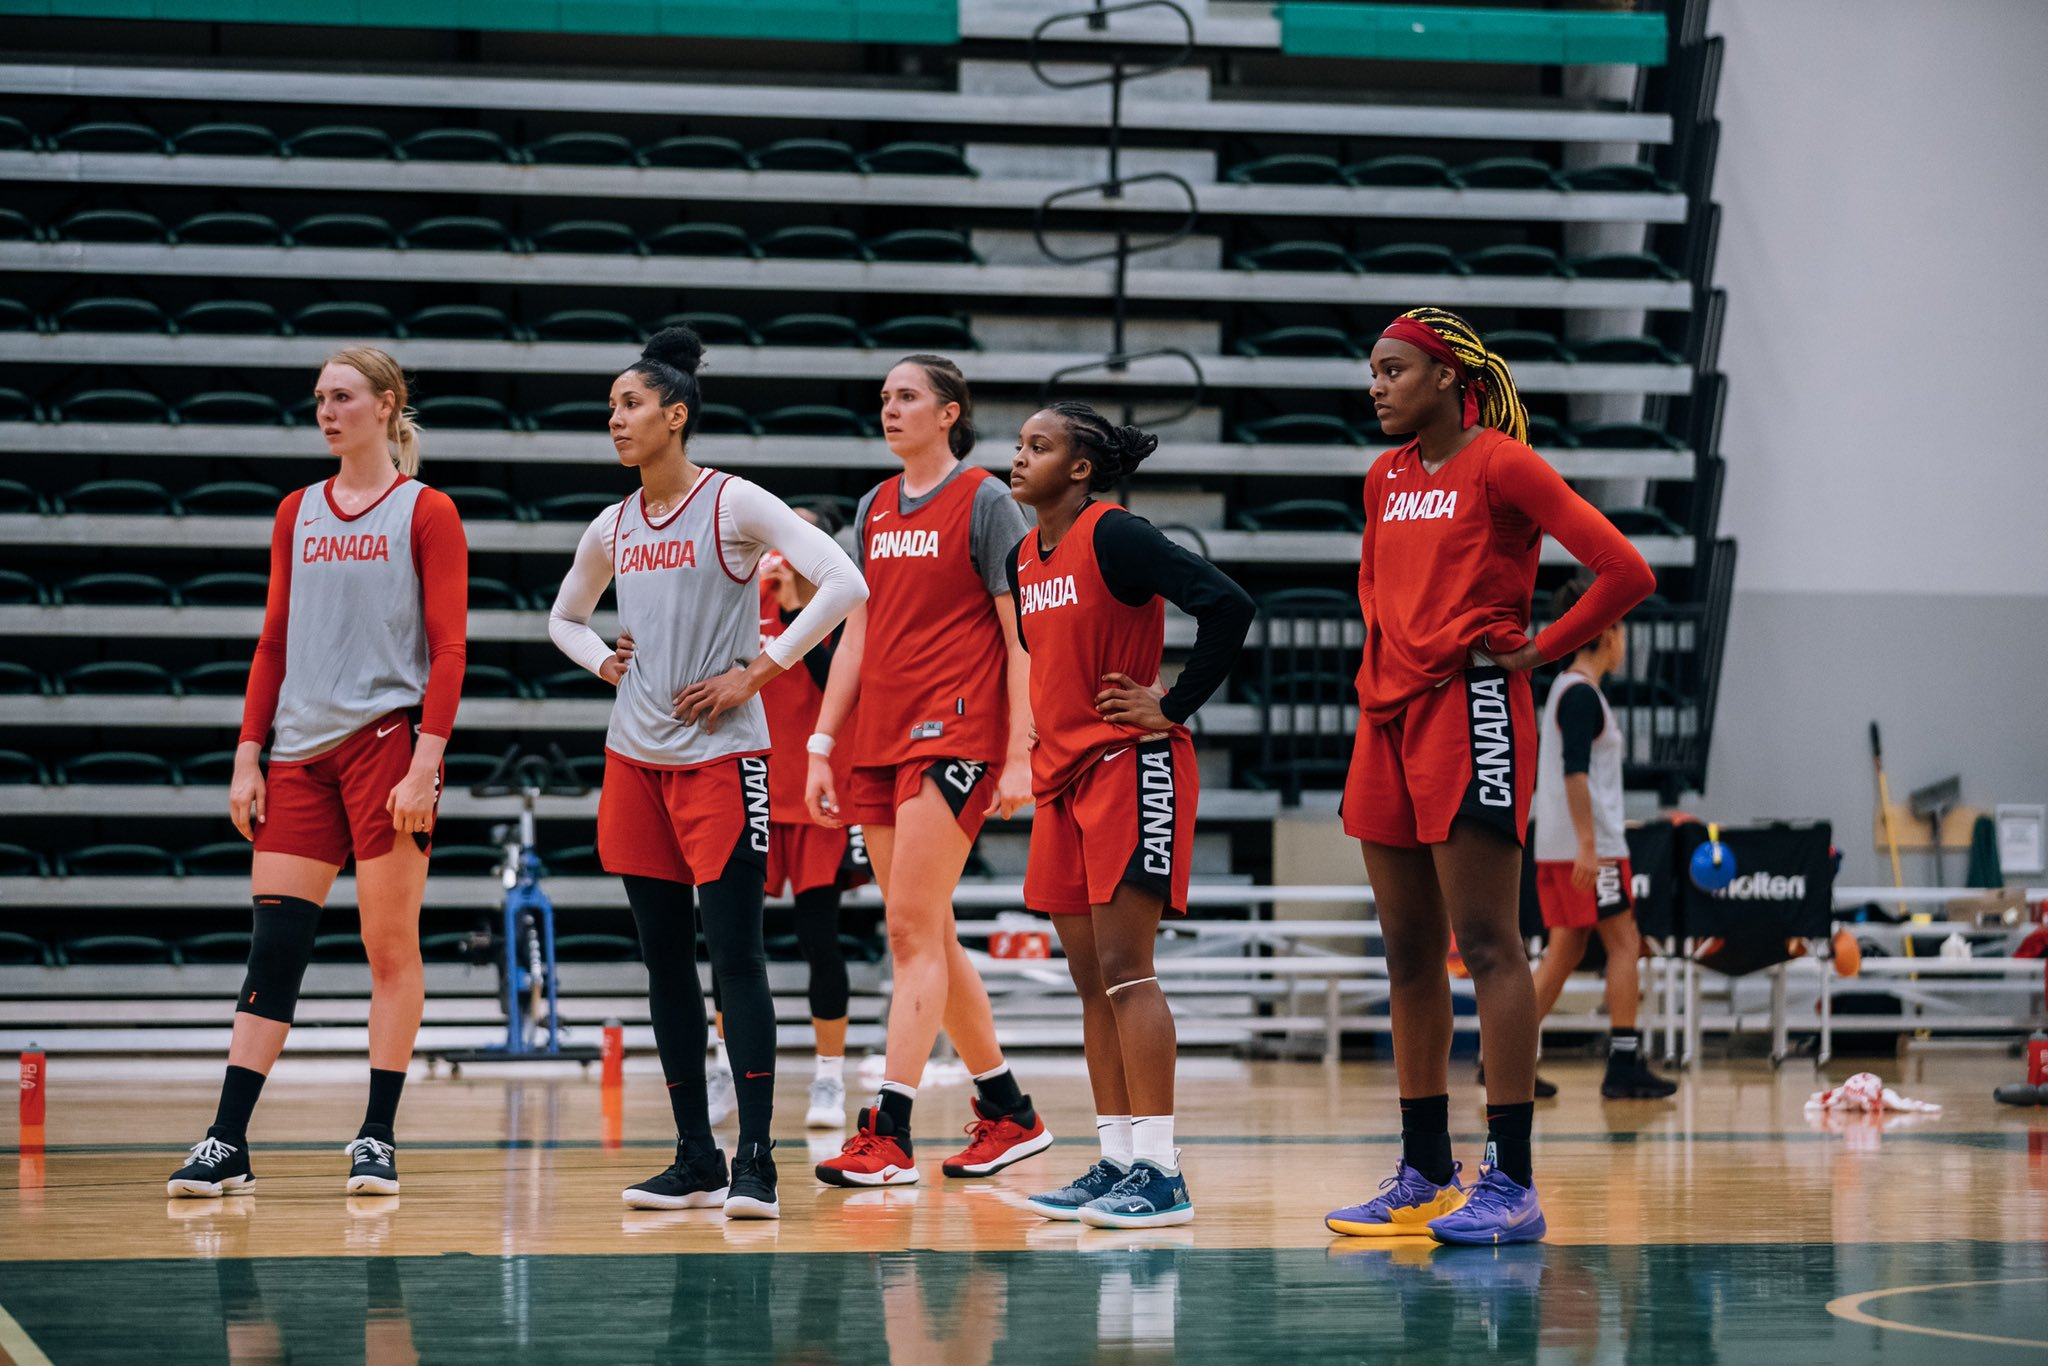 Senior Women's National Team announced ahead of FIBA Women's Americup 2019